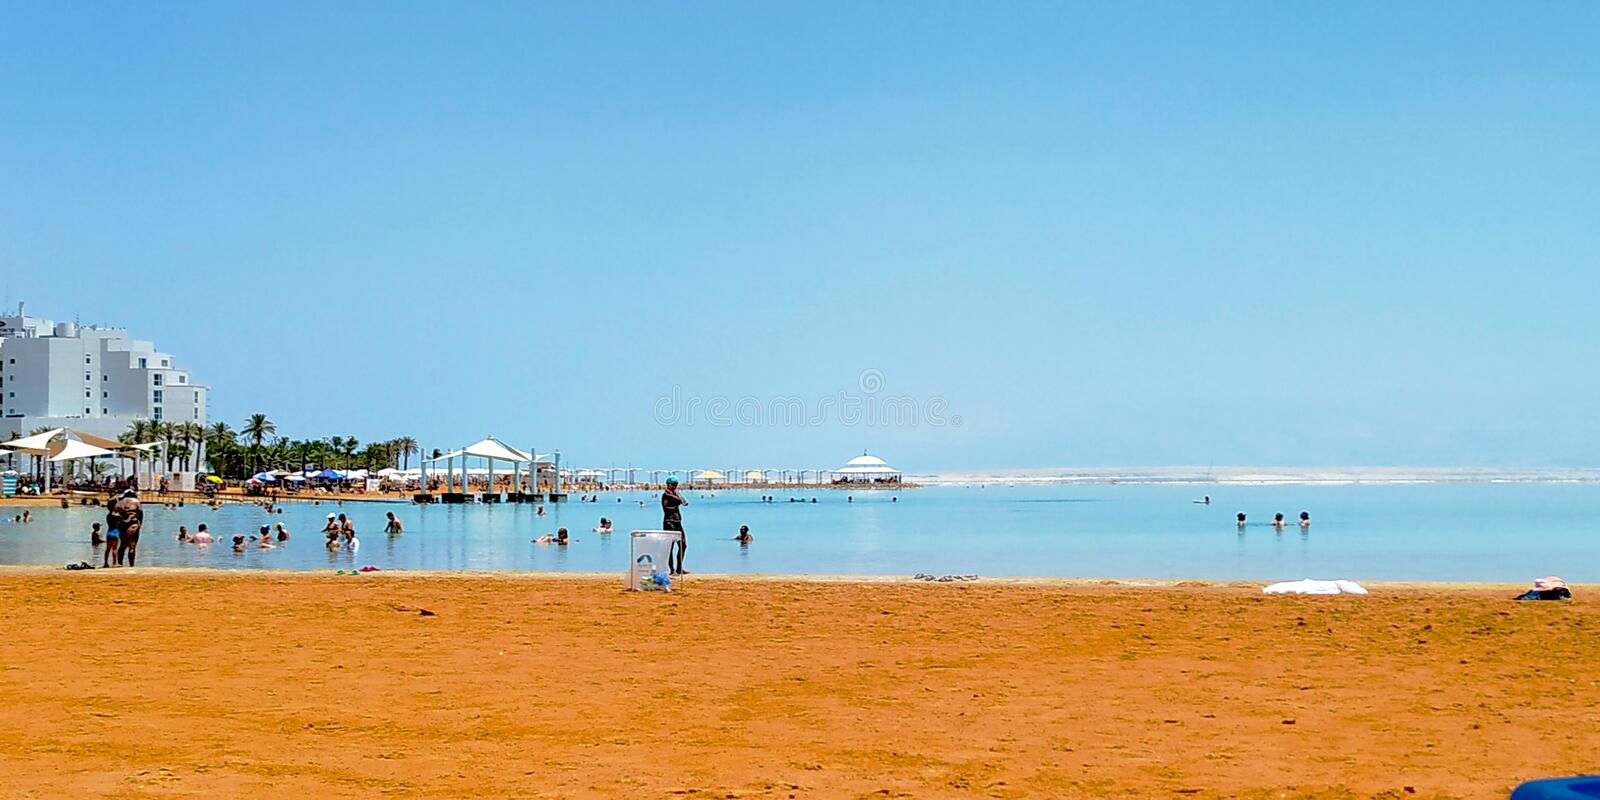 Beach in Dead Sea, Israel. stock images